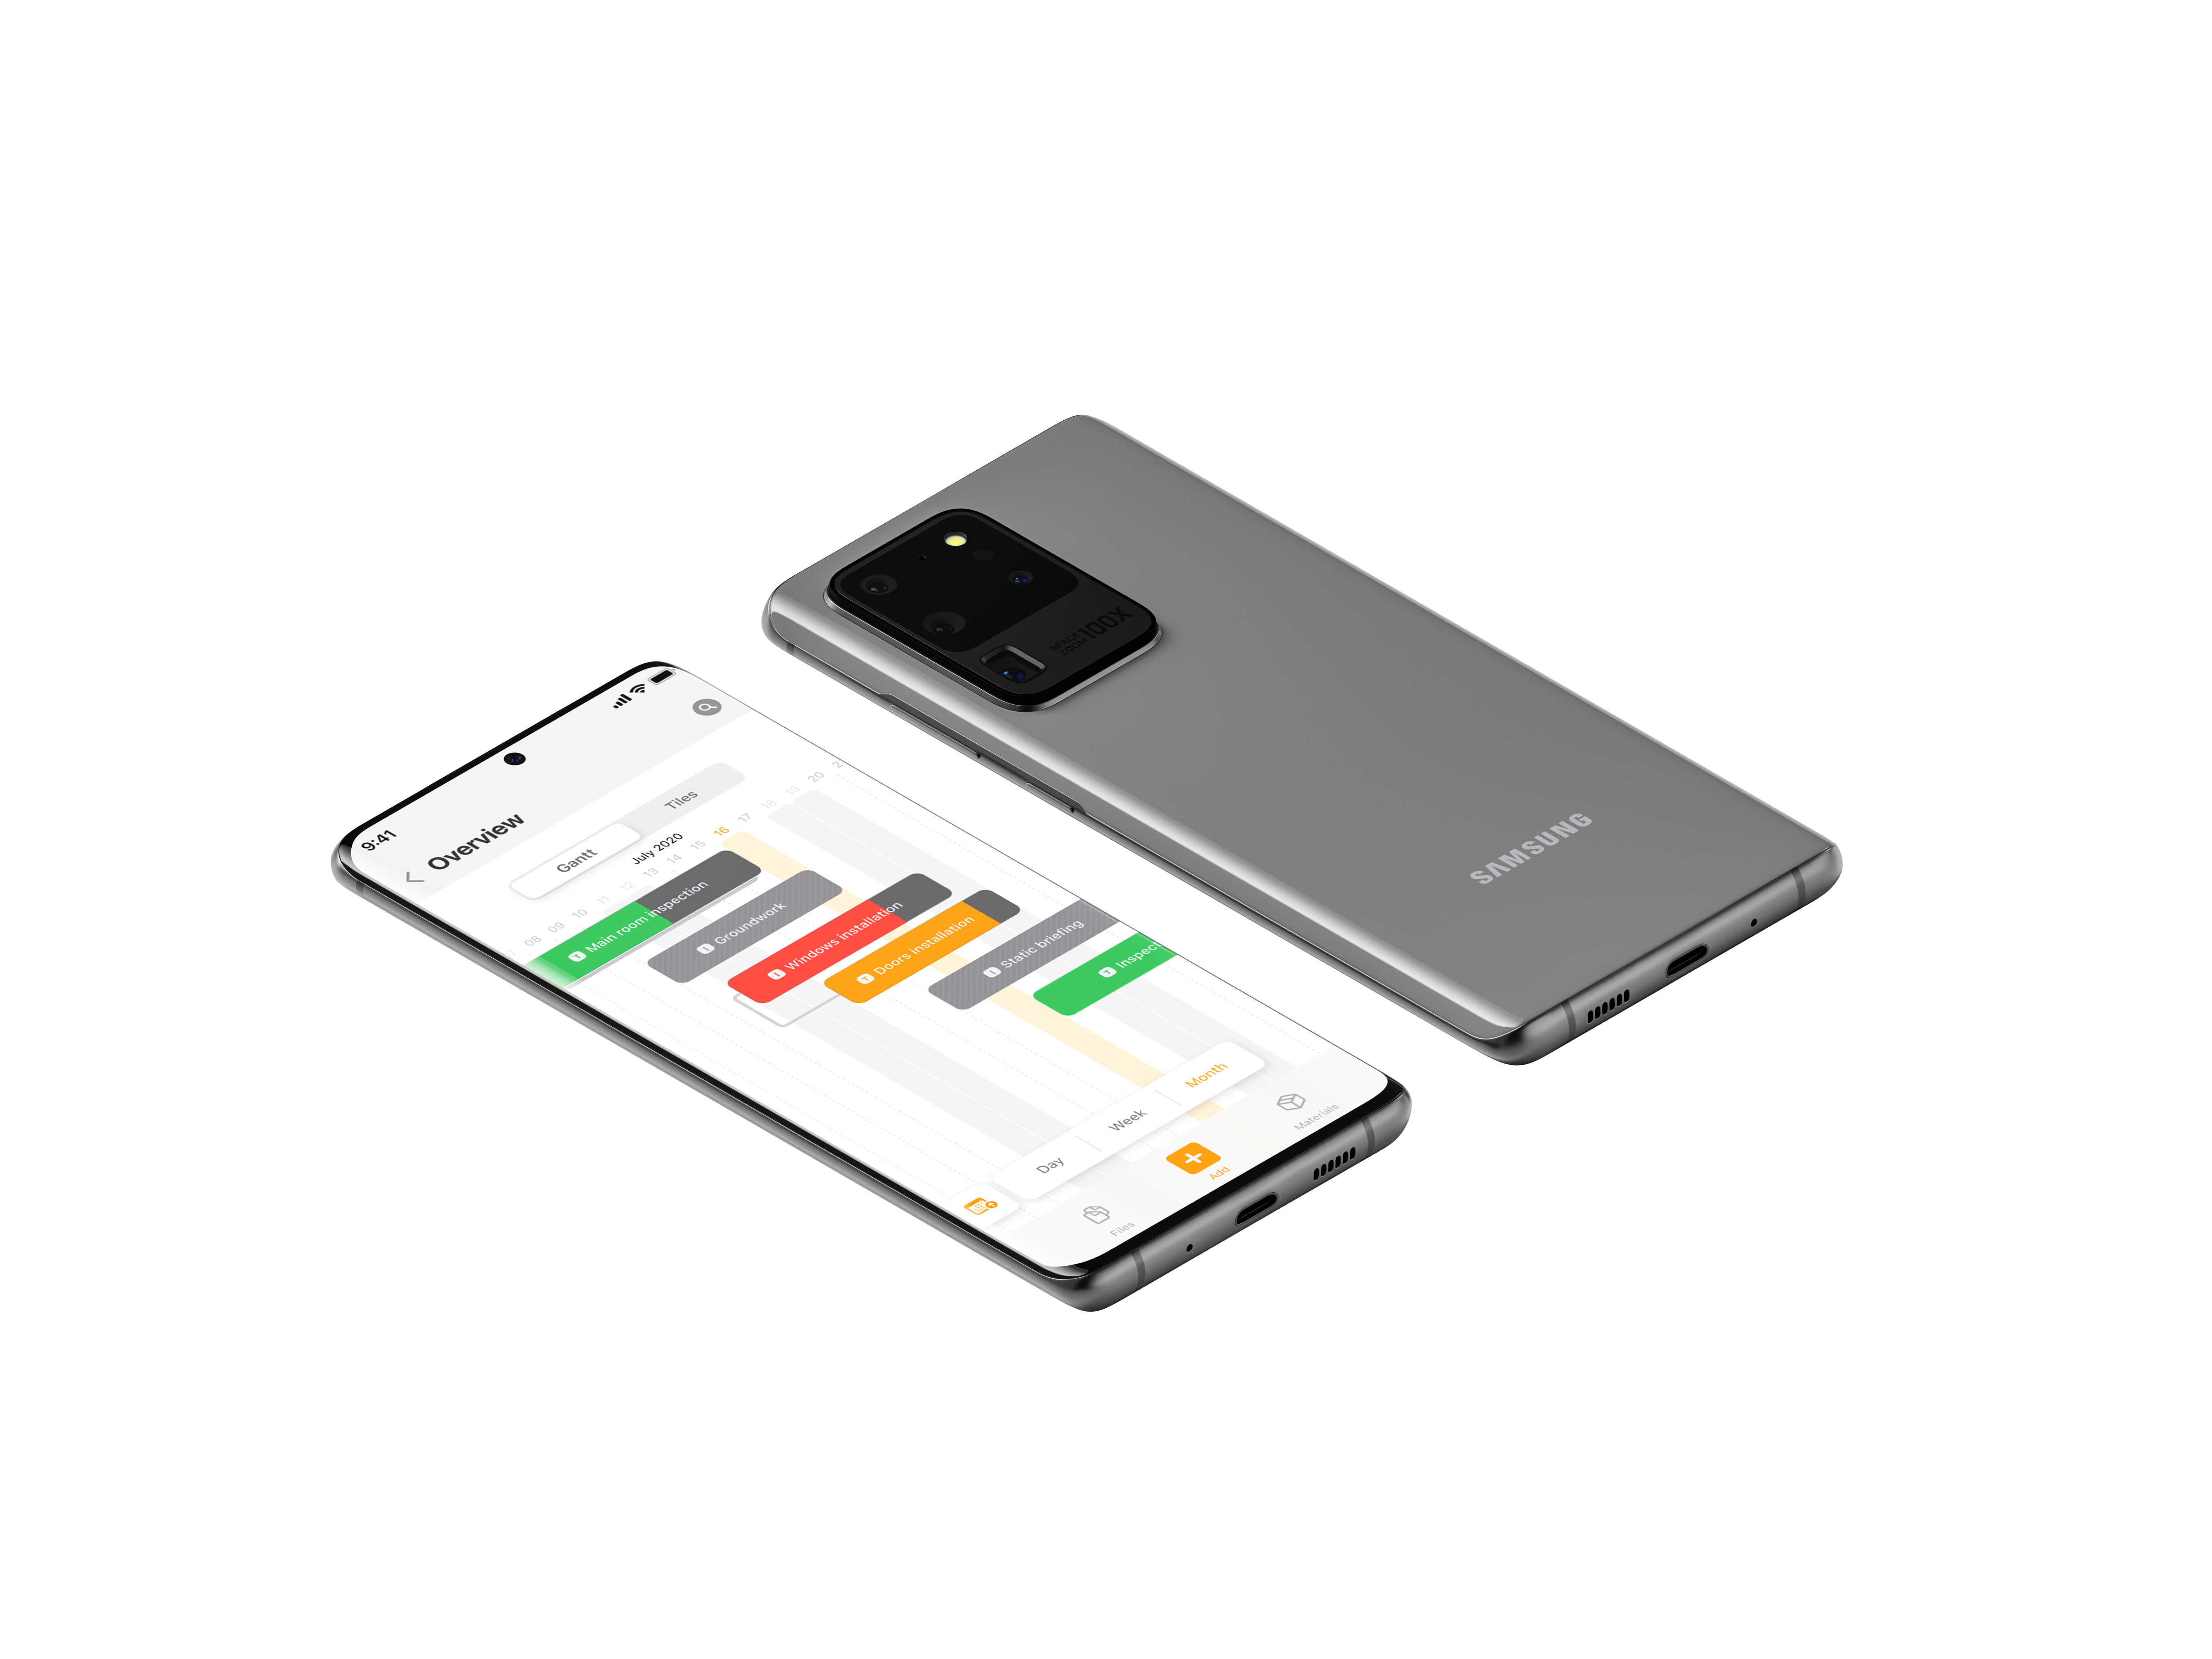 project management software task management function on samsung phone